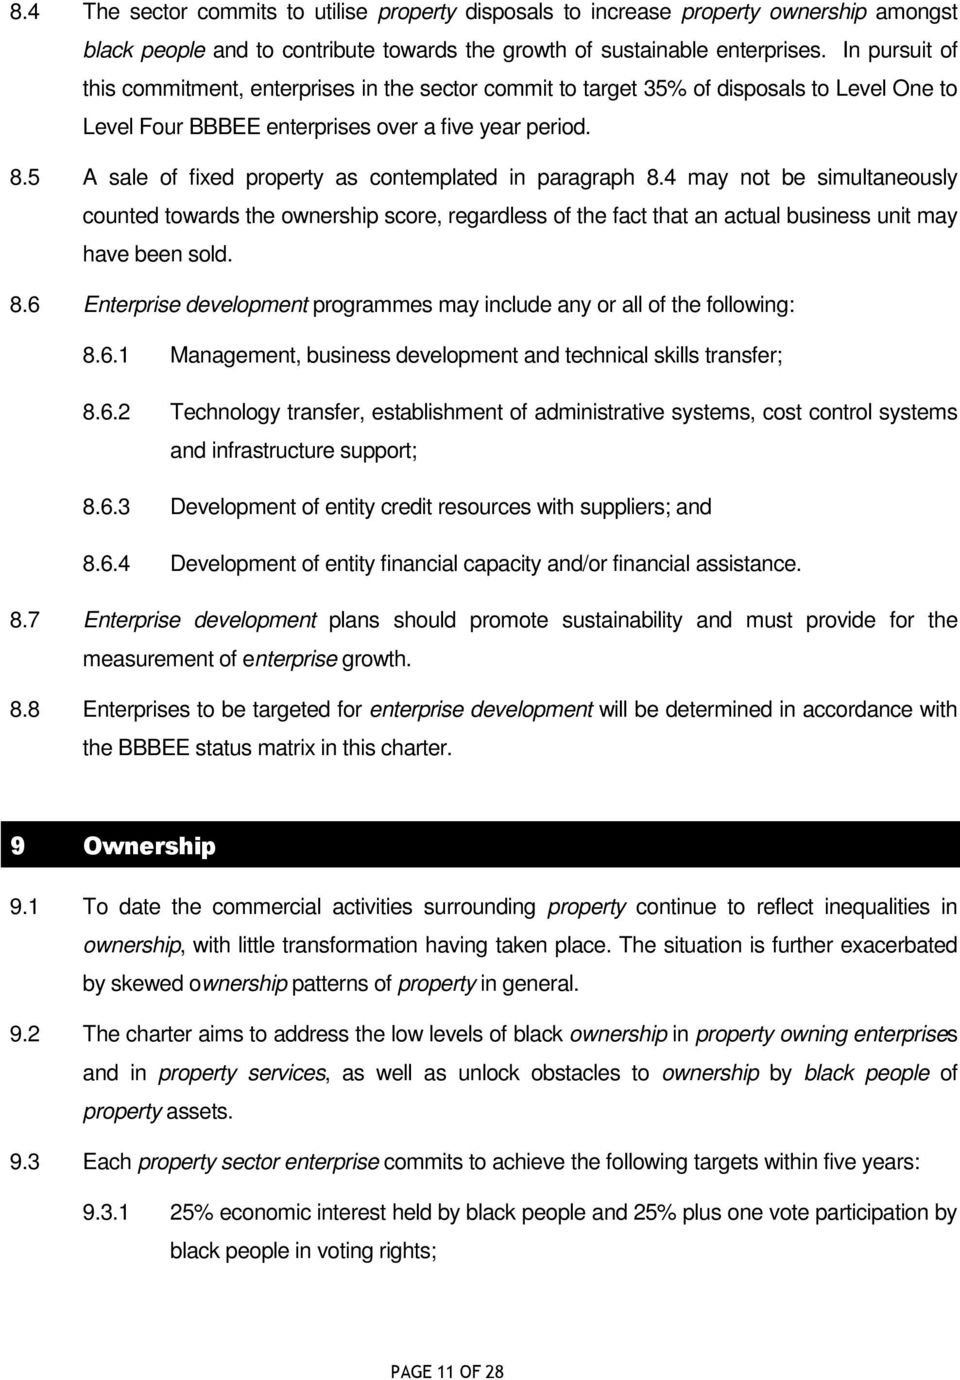 5 A sale of fixed property as contemplated in paragraph 8.4 may not be simultaneously counted towards the ownership score, regardless of the fact that an actual business unit may have been sold. 8.6 Enterprise development programmes may include any or all of the following: 8.